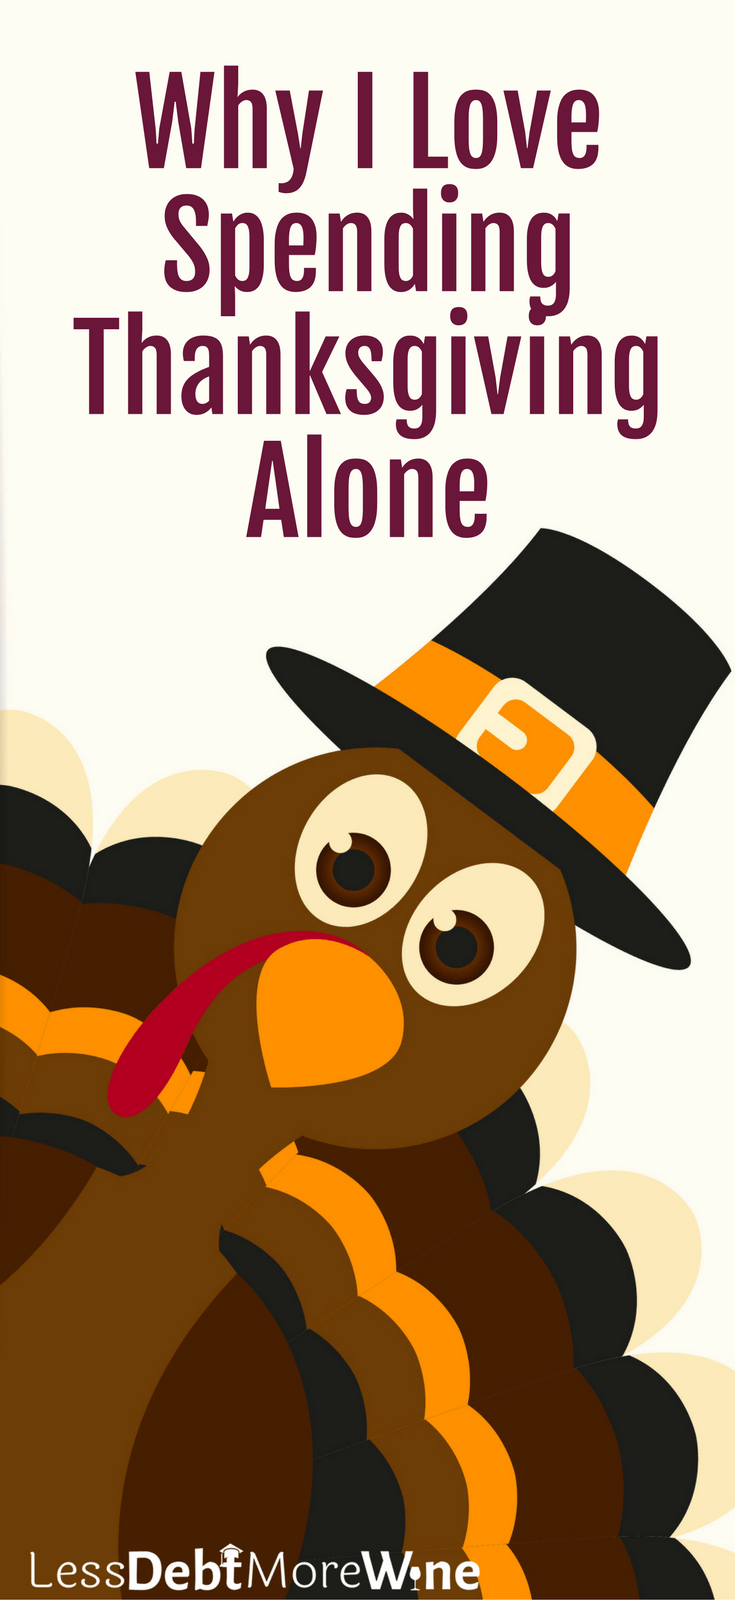 thanksgiving alone | holiday season | how to spend thanksgiving